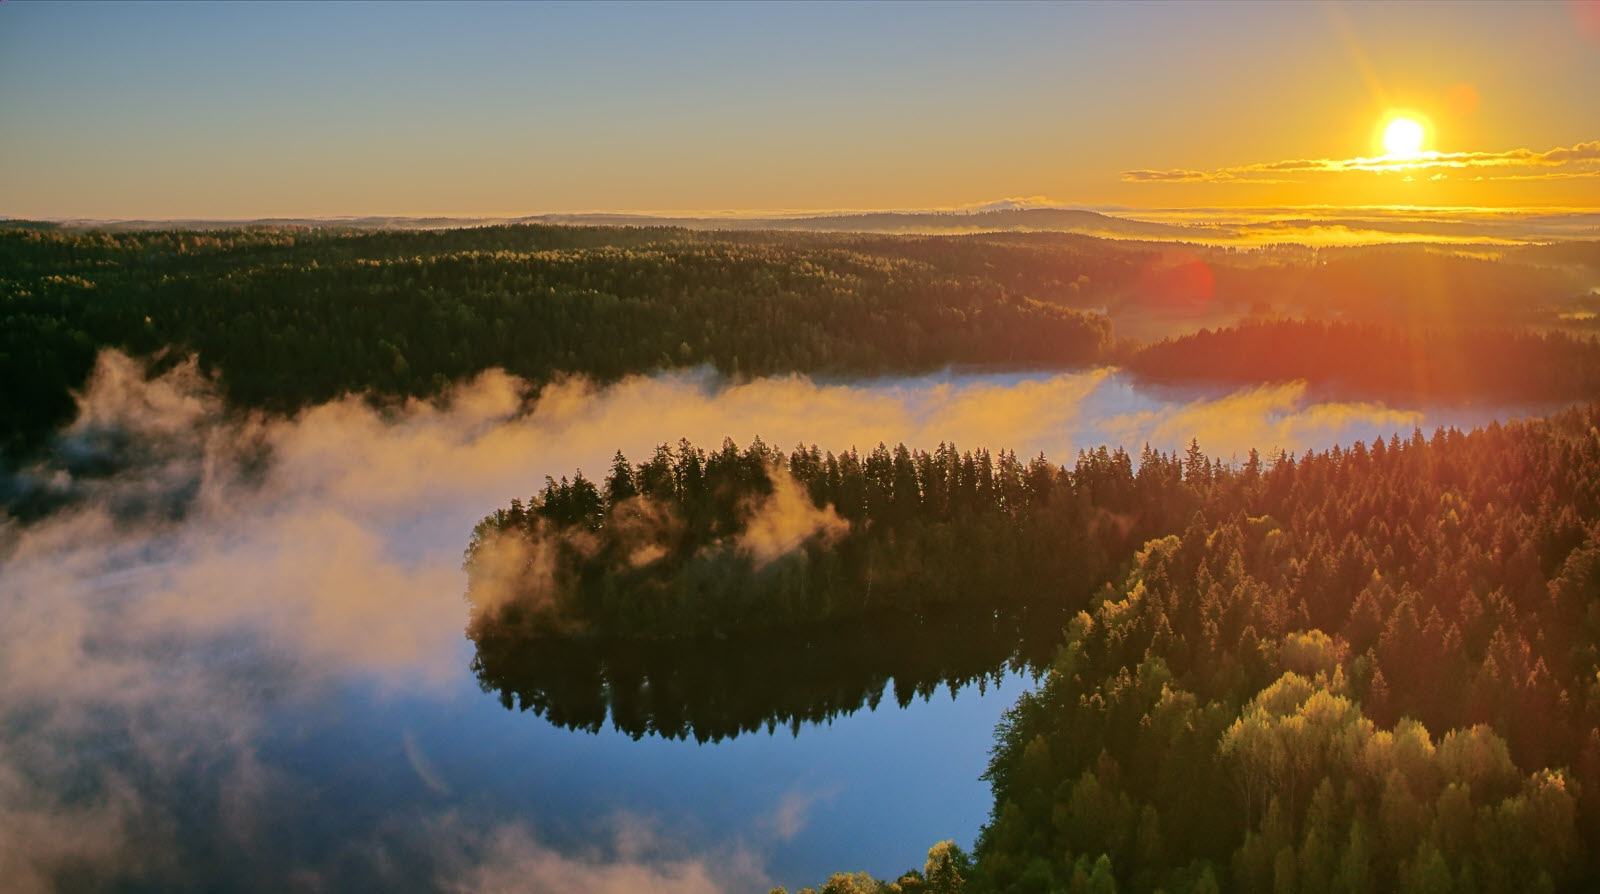 Foggy aerial view of the Aulanko nature reserve park in Finland.